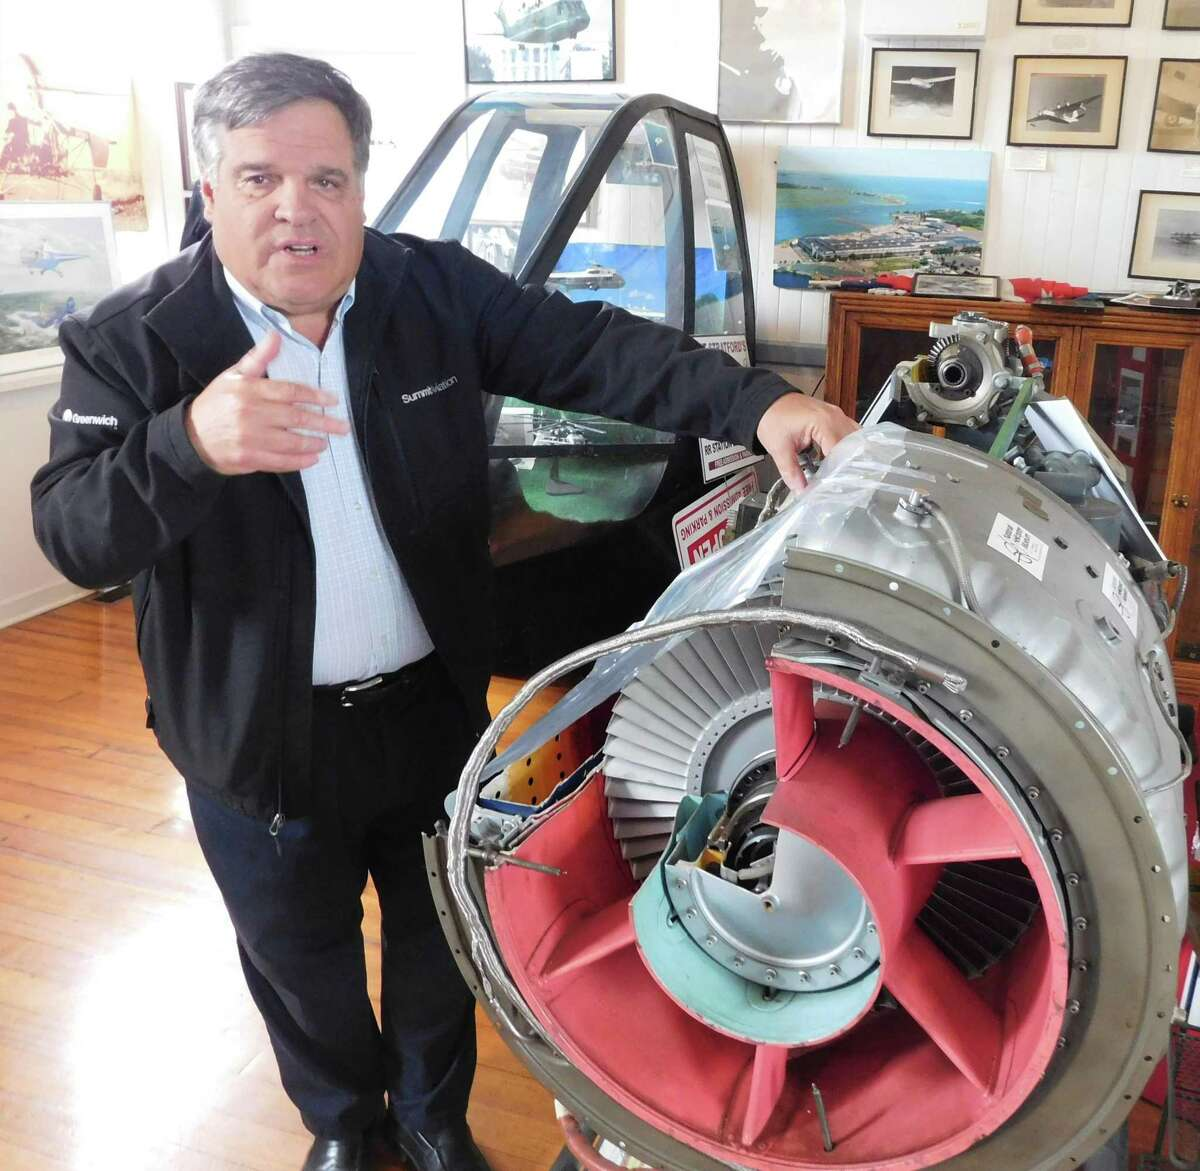 National Helicopter Museum board president Ken Pike explains the Stratford-based museum's mission while standing next to a displayed helicopter engine.